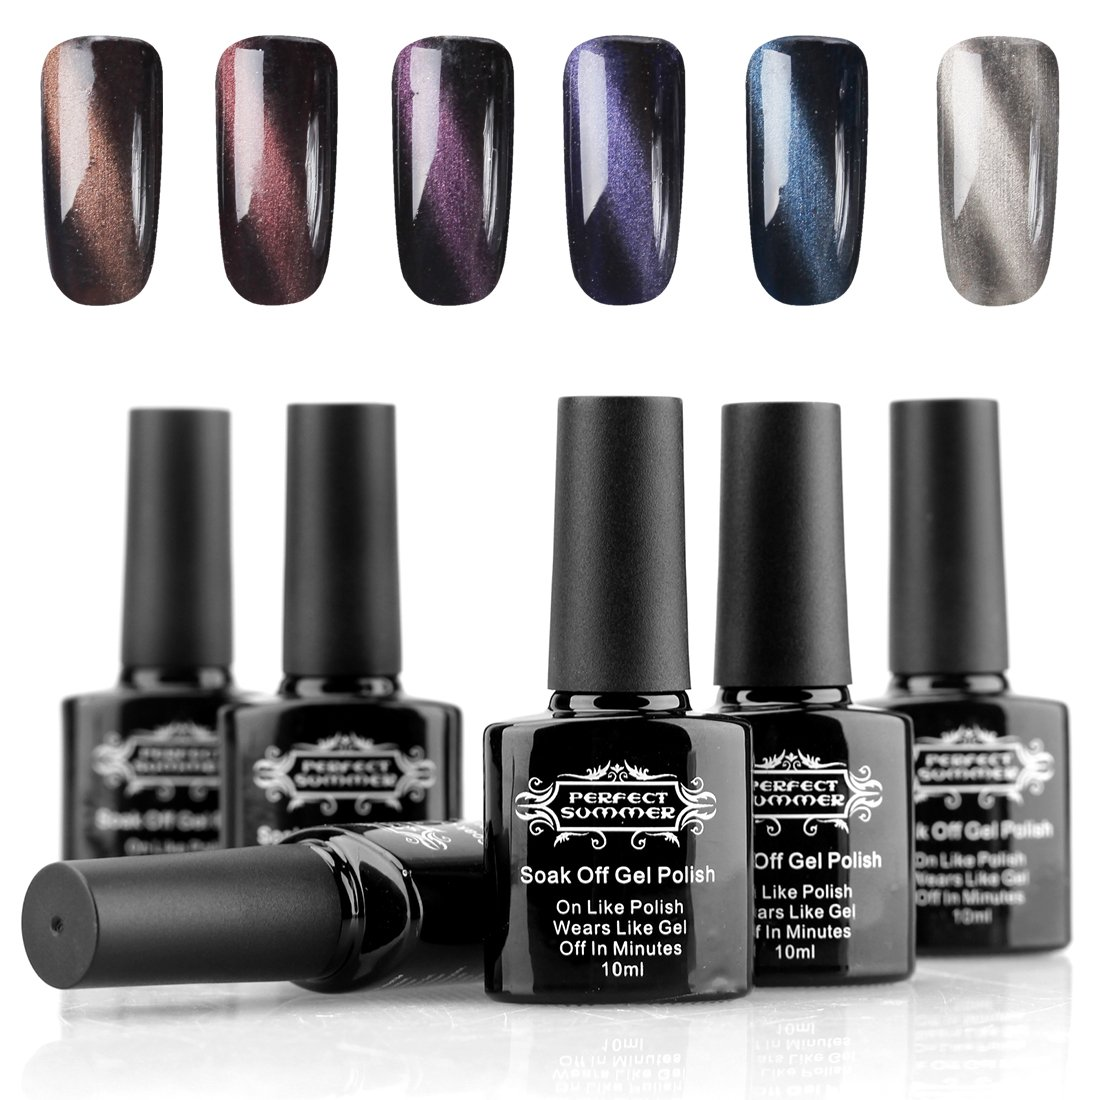 Perfect Summer Magnetic Gel Nail Polish 10ml UV LED Gel Nails 3D Cat Eye Effect Nail Art kits set 6 colors + 1PCS Free Magnet Stick + 1PCS Free Magic Pen #14 Shun Yan Cosmetics. Ltd.